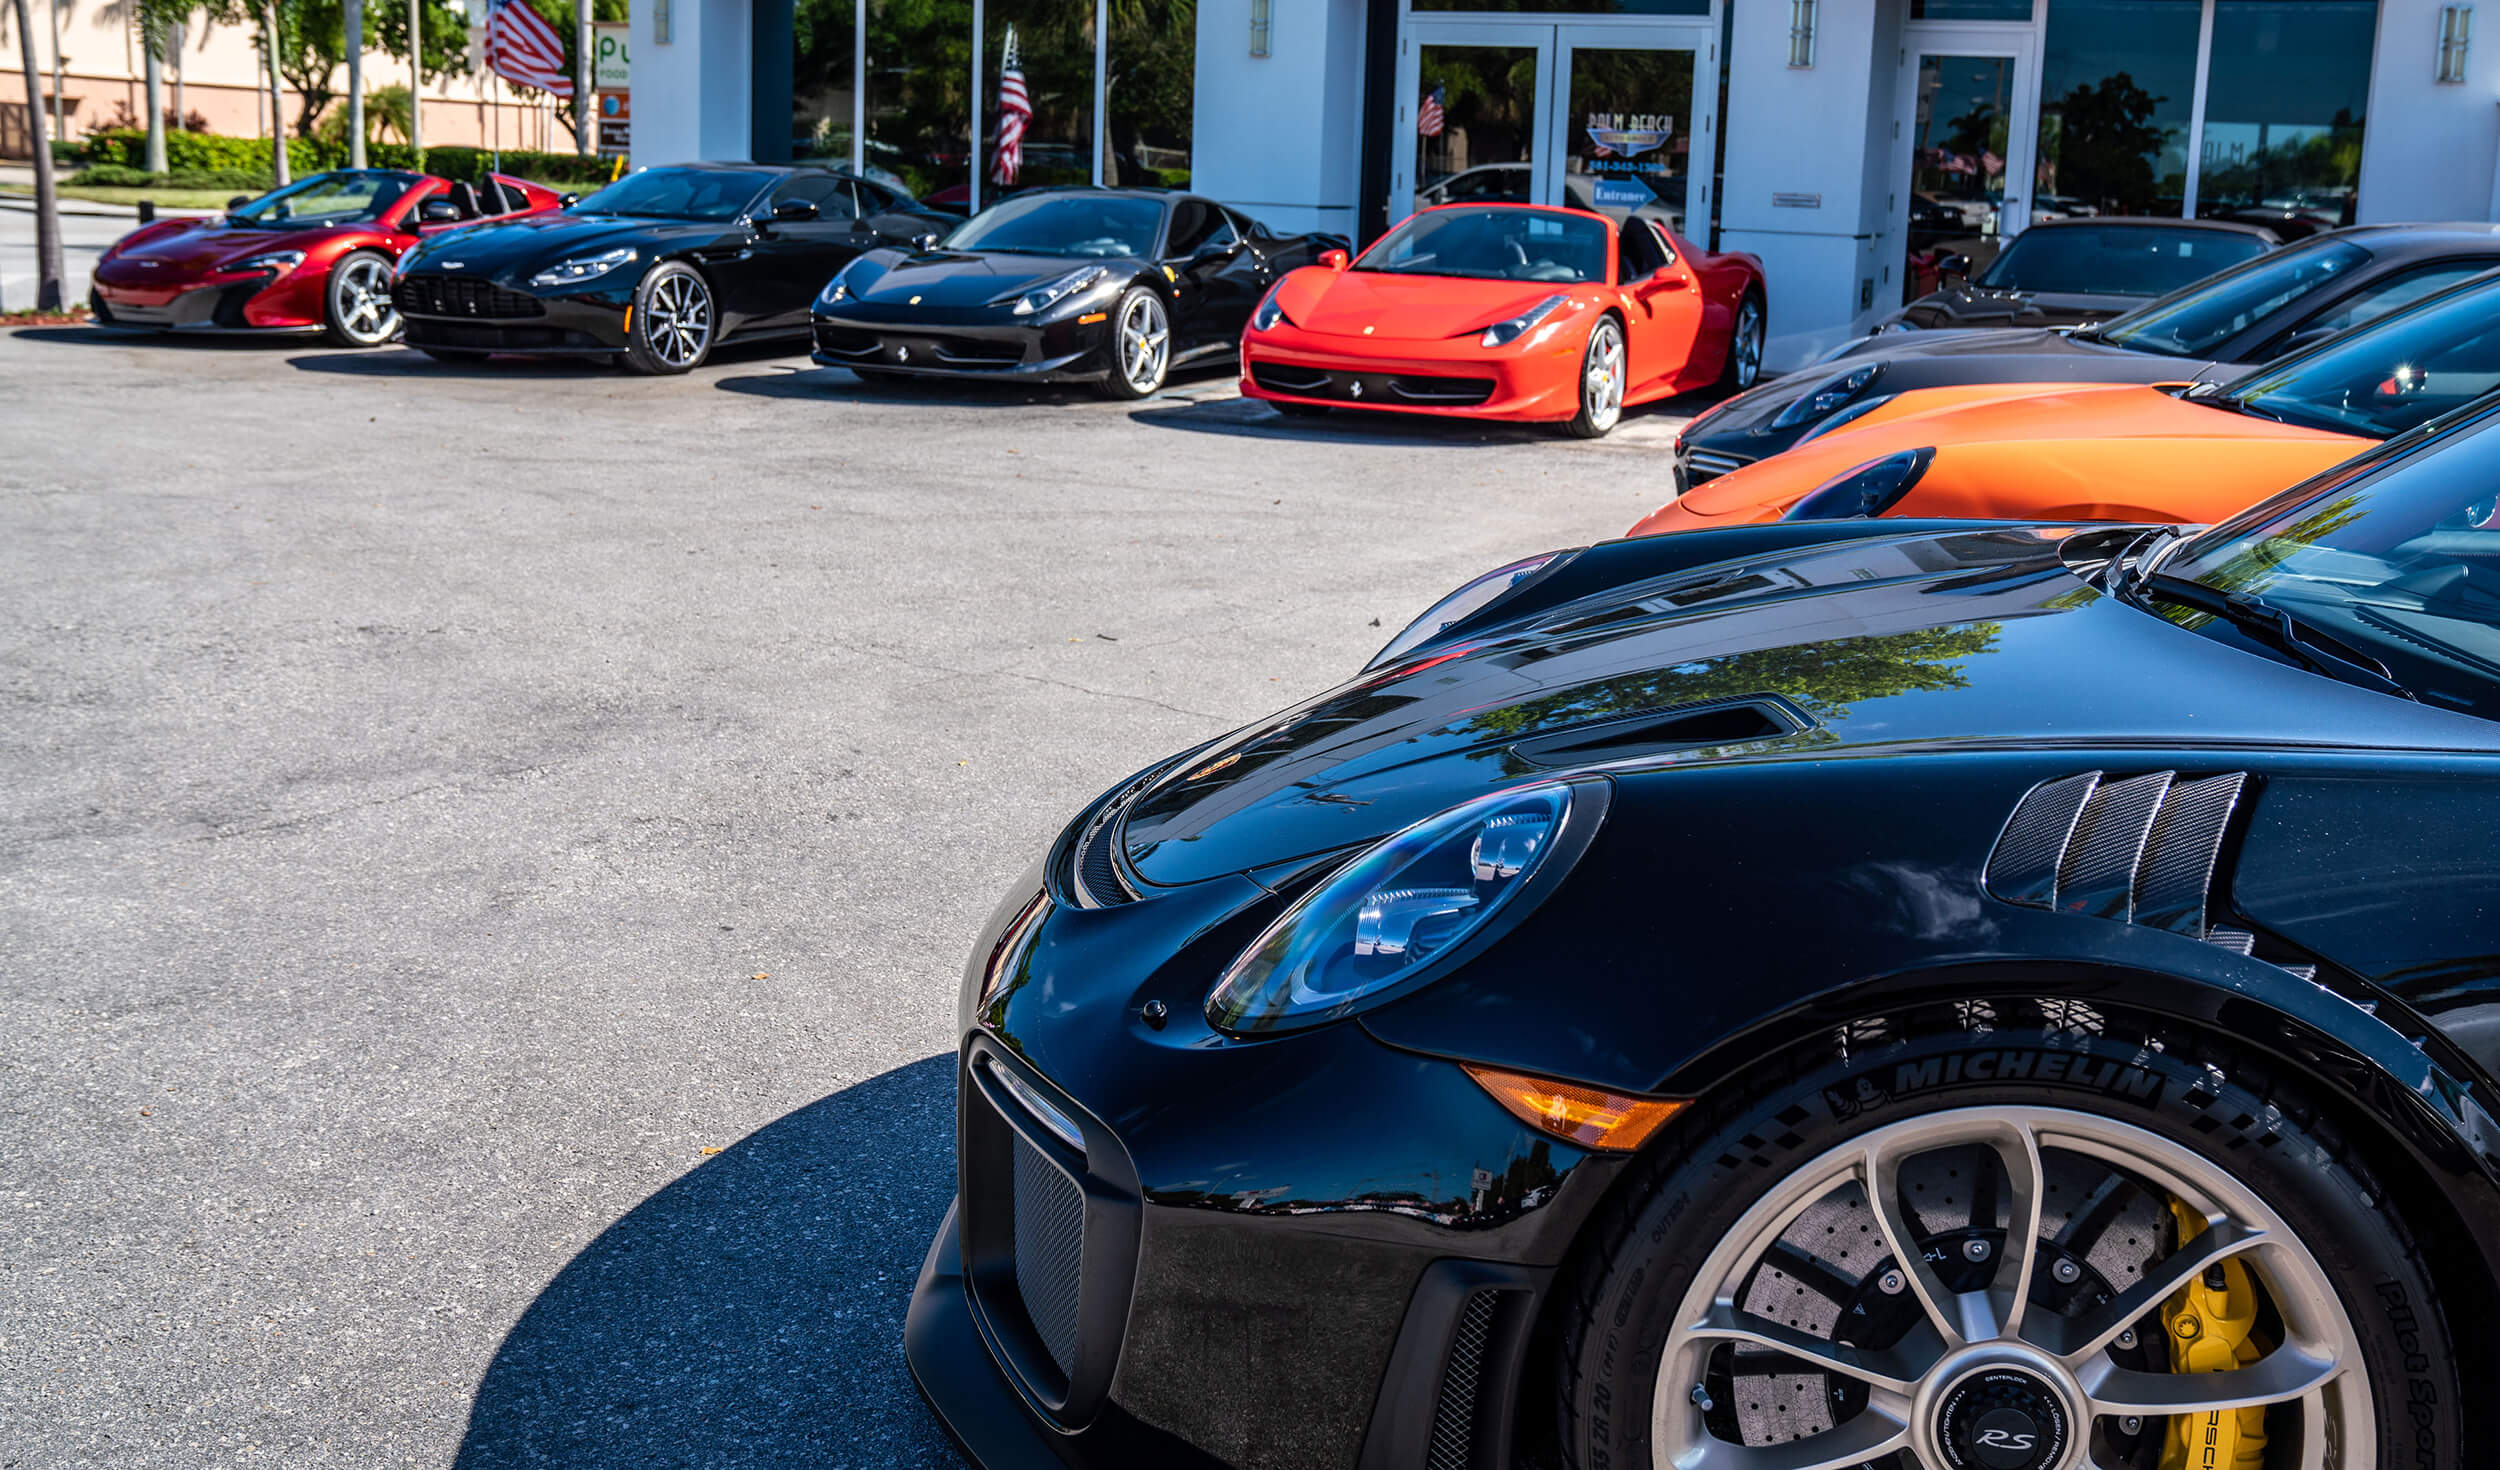 Exterior image of Palm Beach Auto Group dealership: front of store with exotic cars.